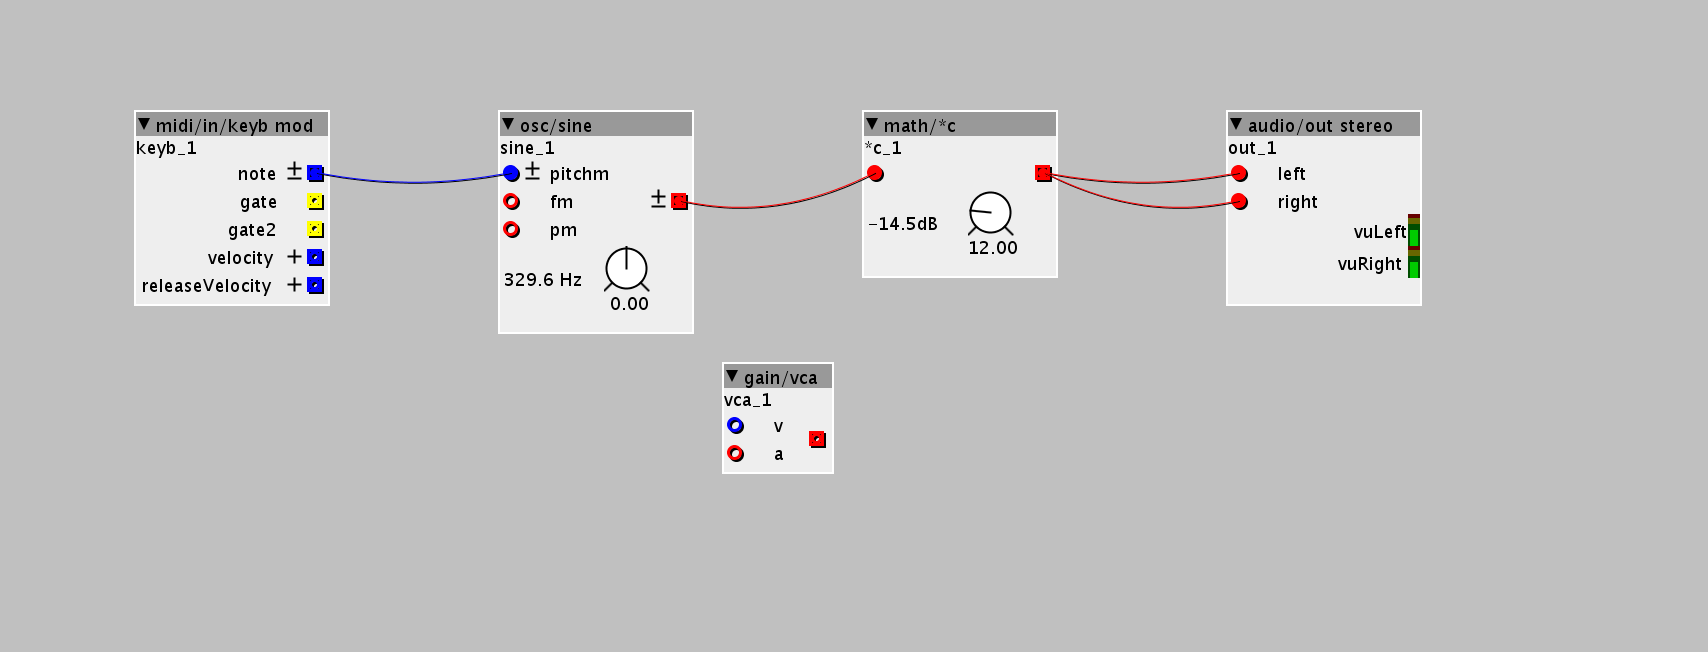 Figure 1.5 — A gain/vca object was added to the document.